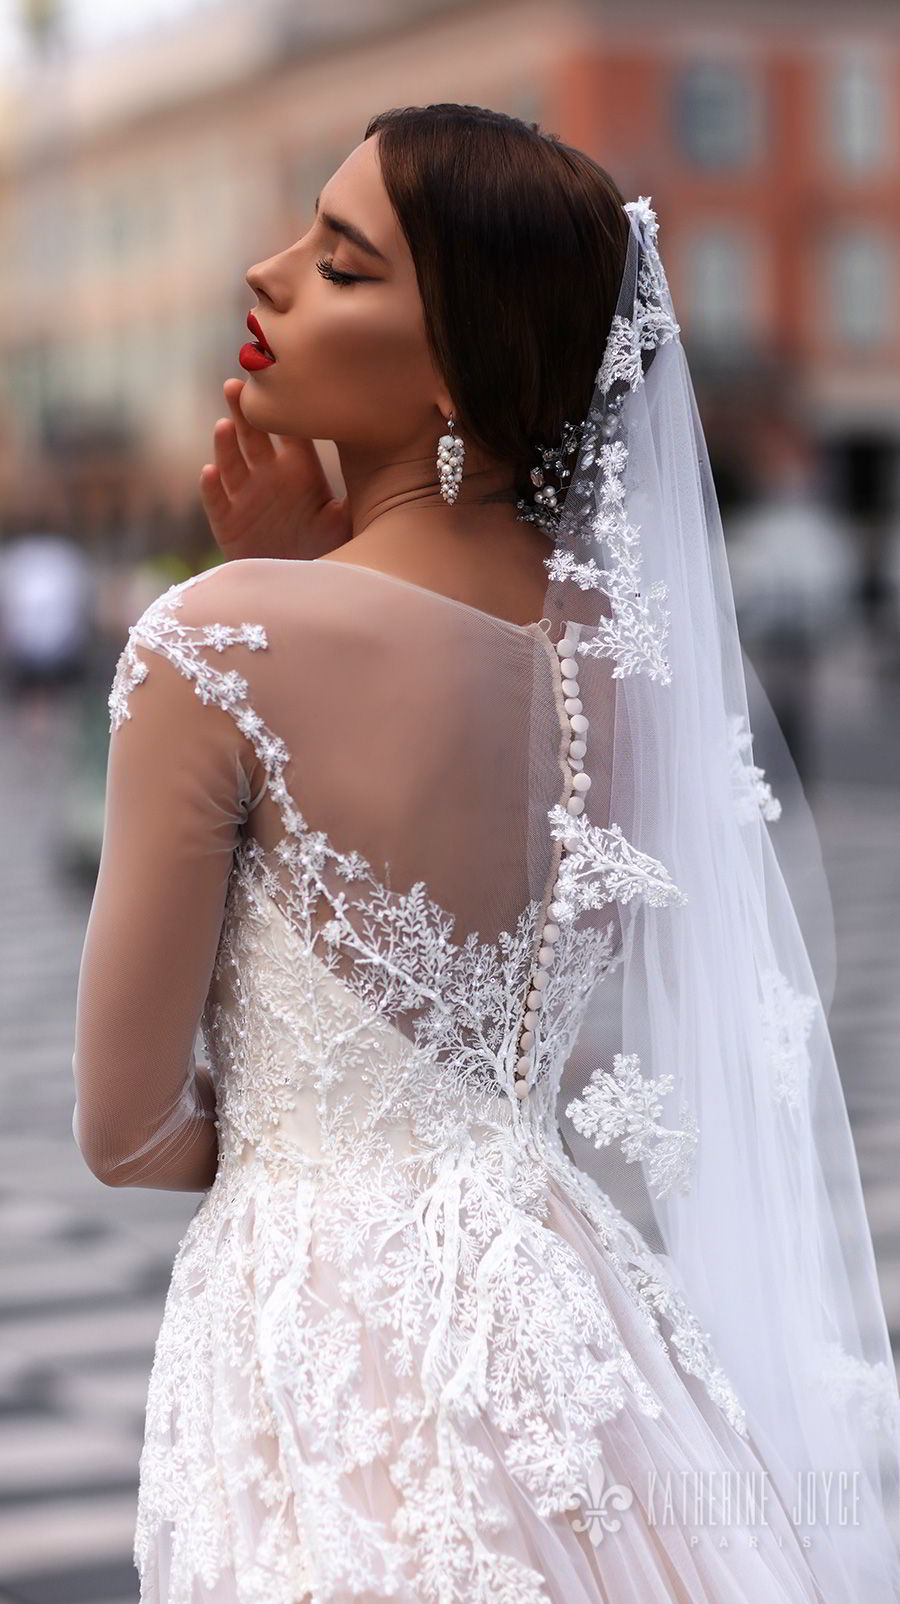 katherine joyce 2018 bridal long sleeves sheer jewel neck sweetheart neckline heavily embellished bodice tulle skirt romantic blush a  line wedding dress sheer back chapel train (dolores) zbv